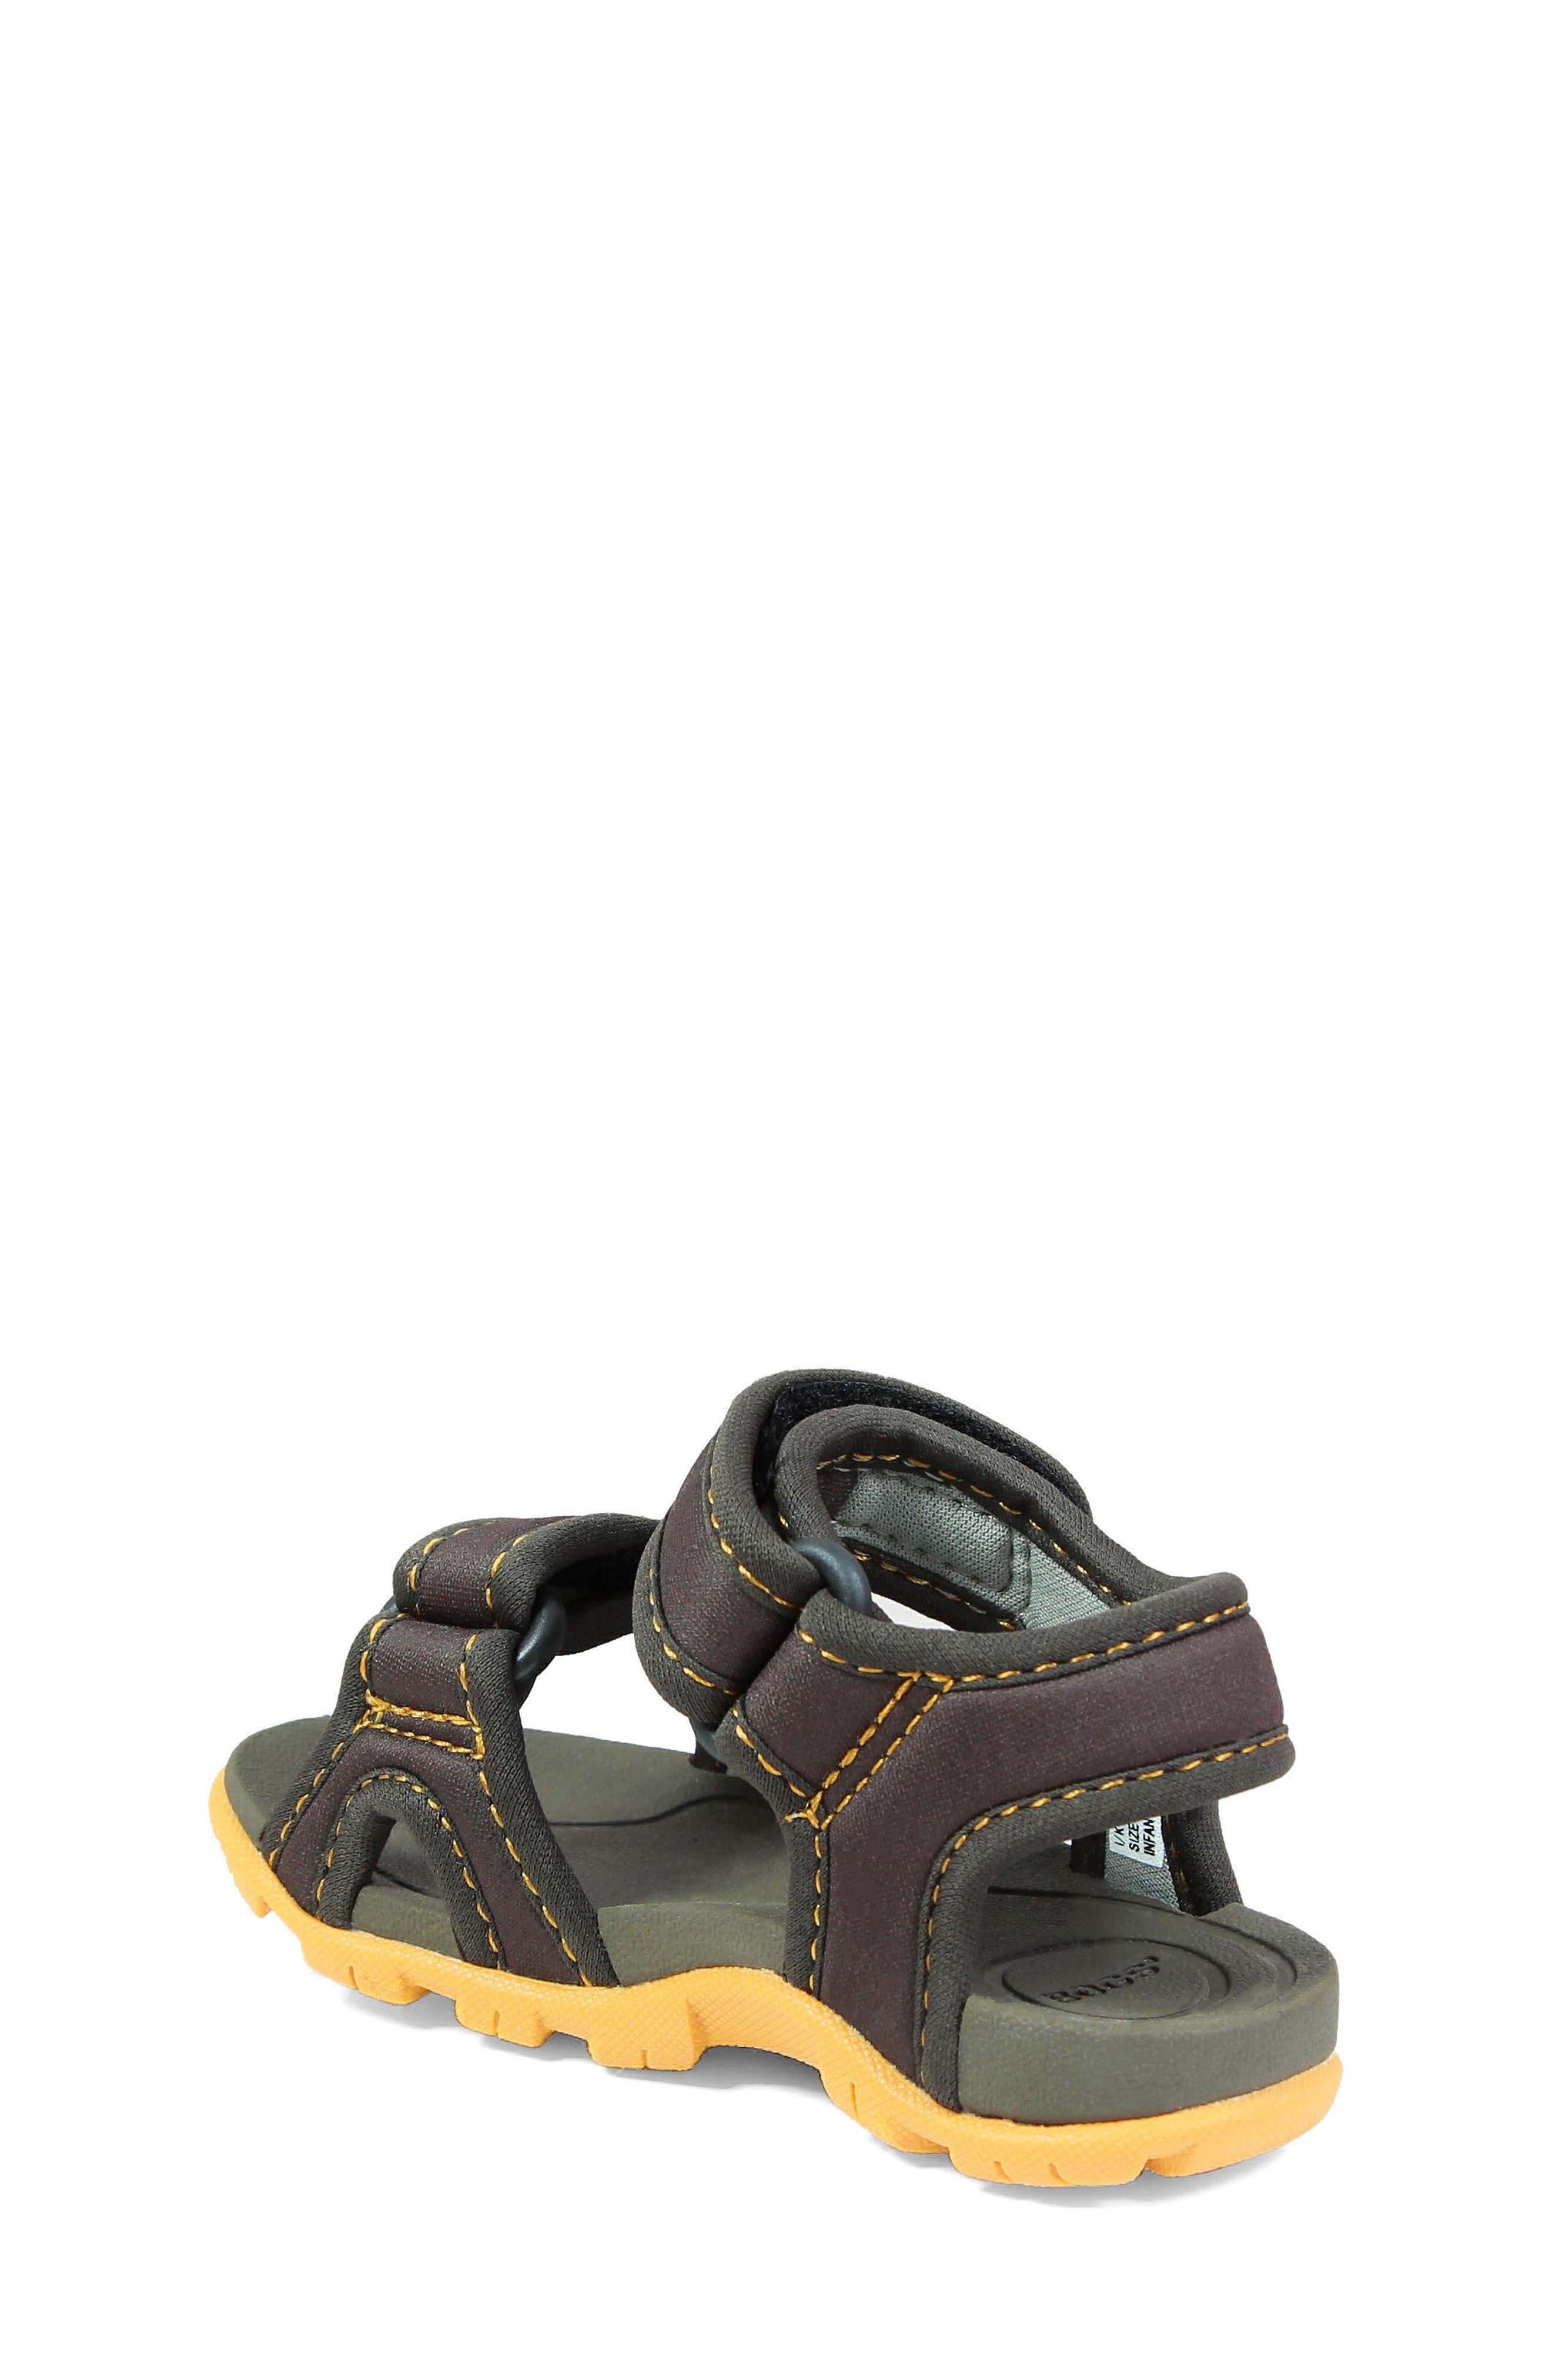 Whitefish Waterproof Sandal,                             Alternate thumbnail 2, color,                             OLIVE MULTI